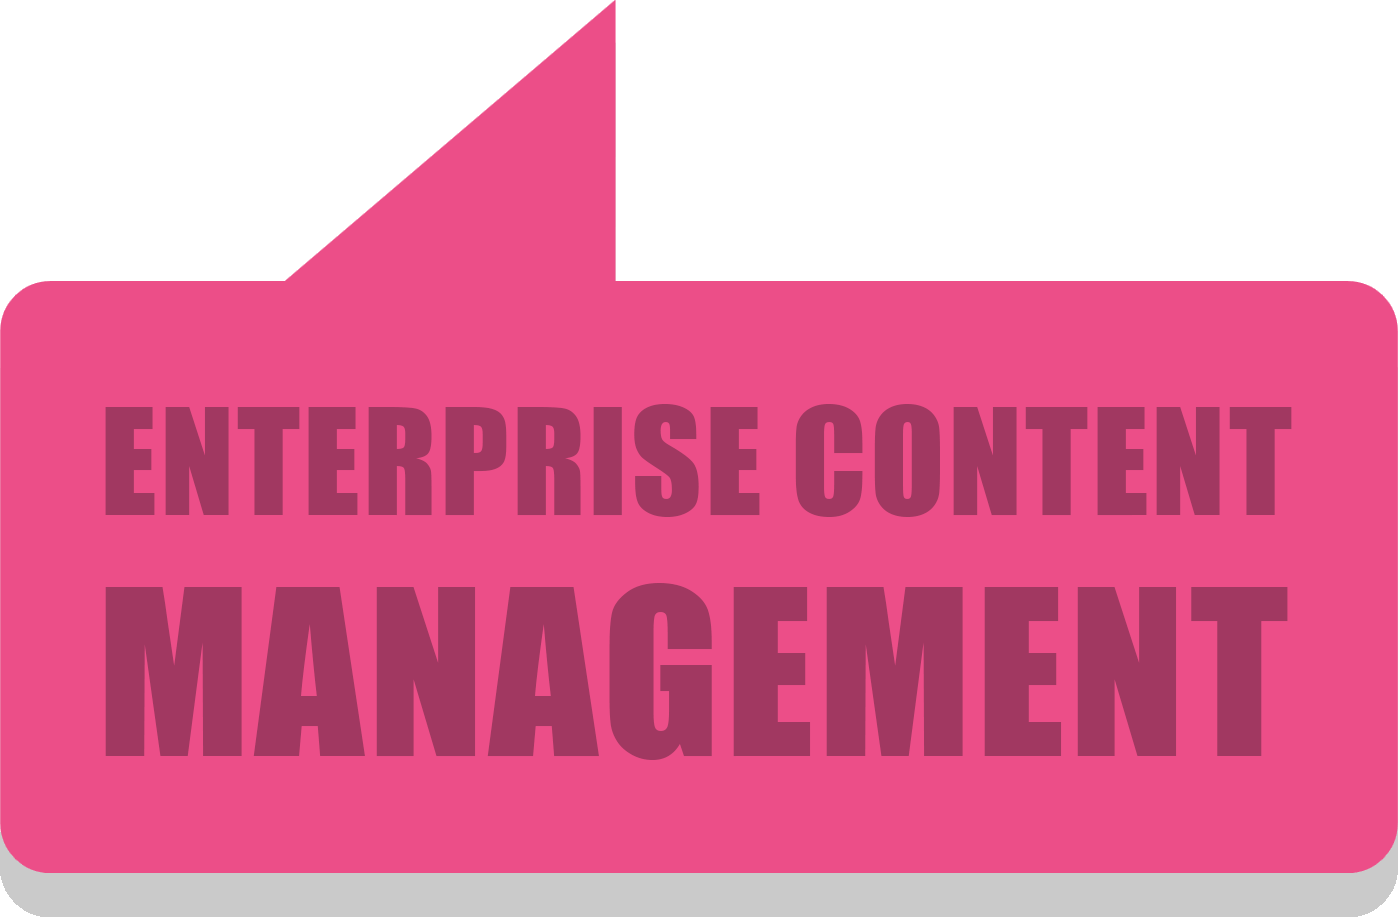 Enterprise Content Management solutions